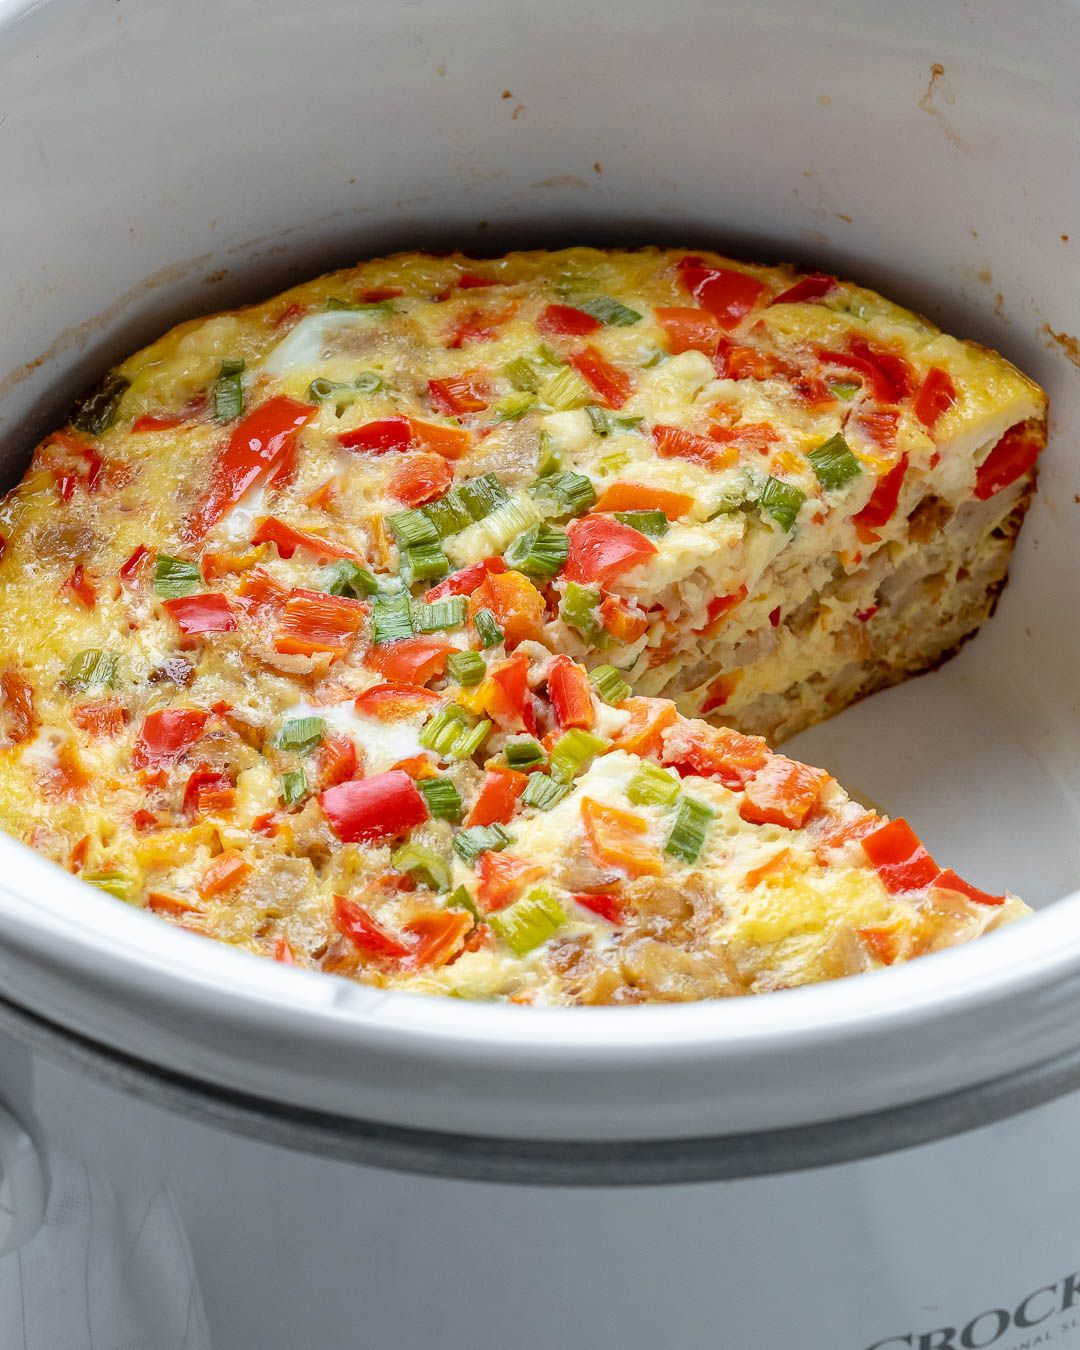 Crockpot Egg Casserole for Clean Eating on a Budget!